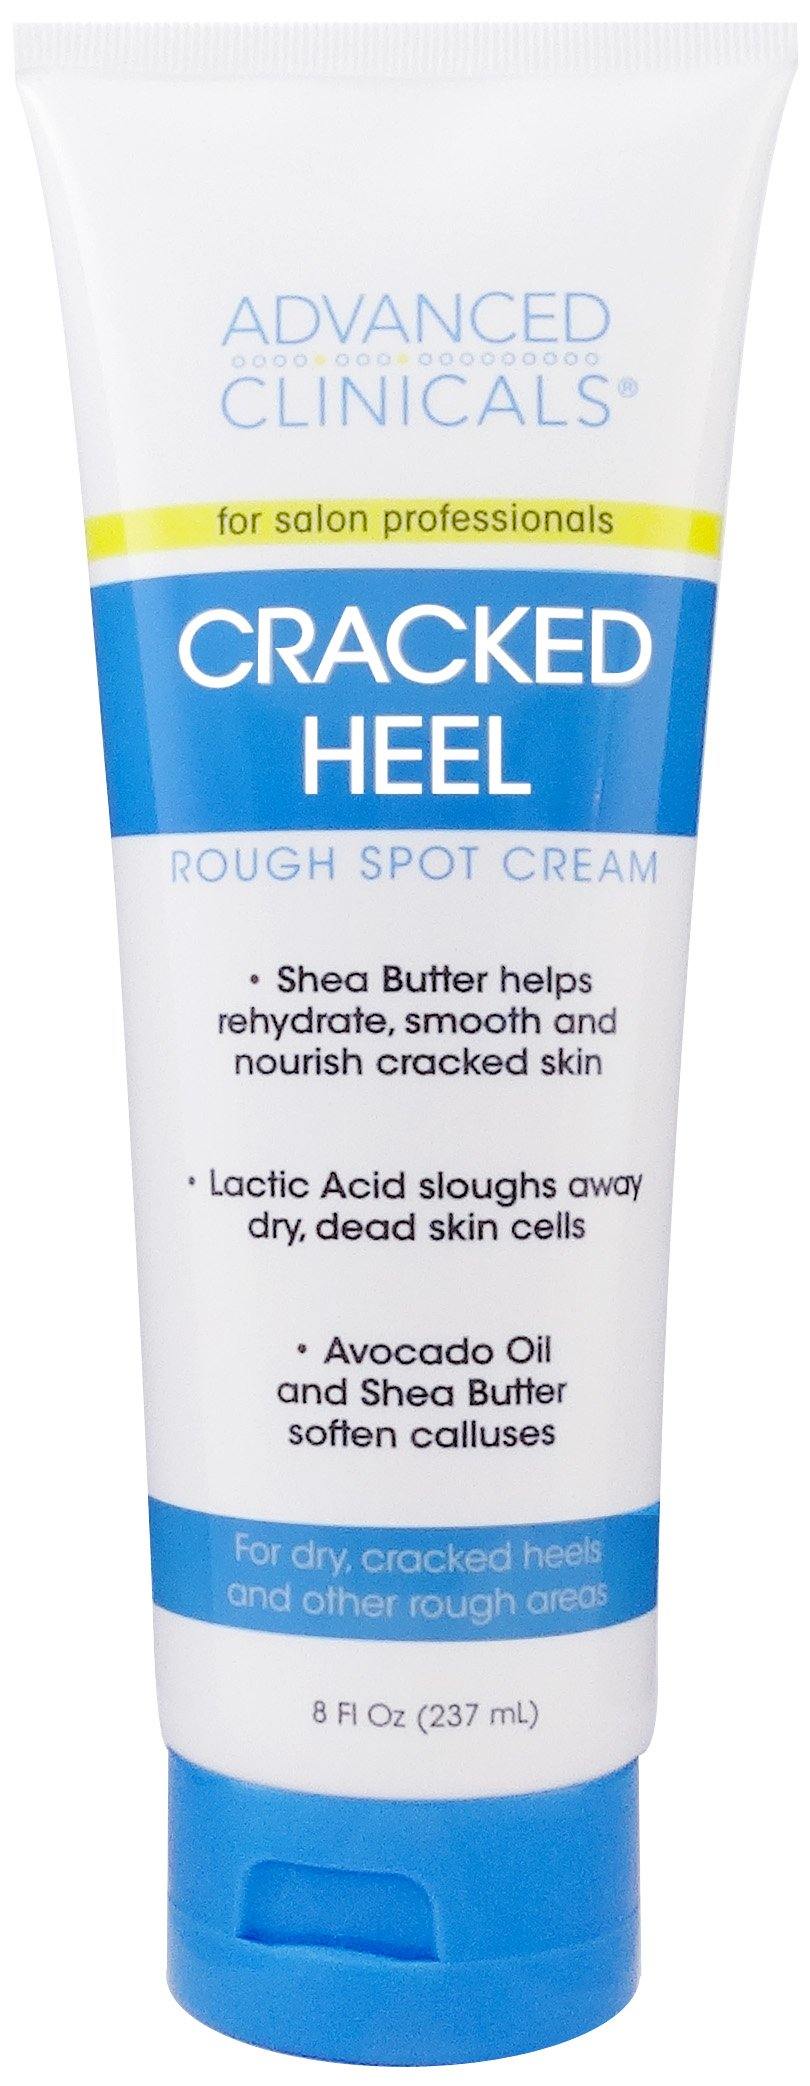 Advanced Clinicals Cracked Heel Cream for dry feet, rough spots, and calluses. 8oz.